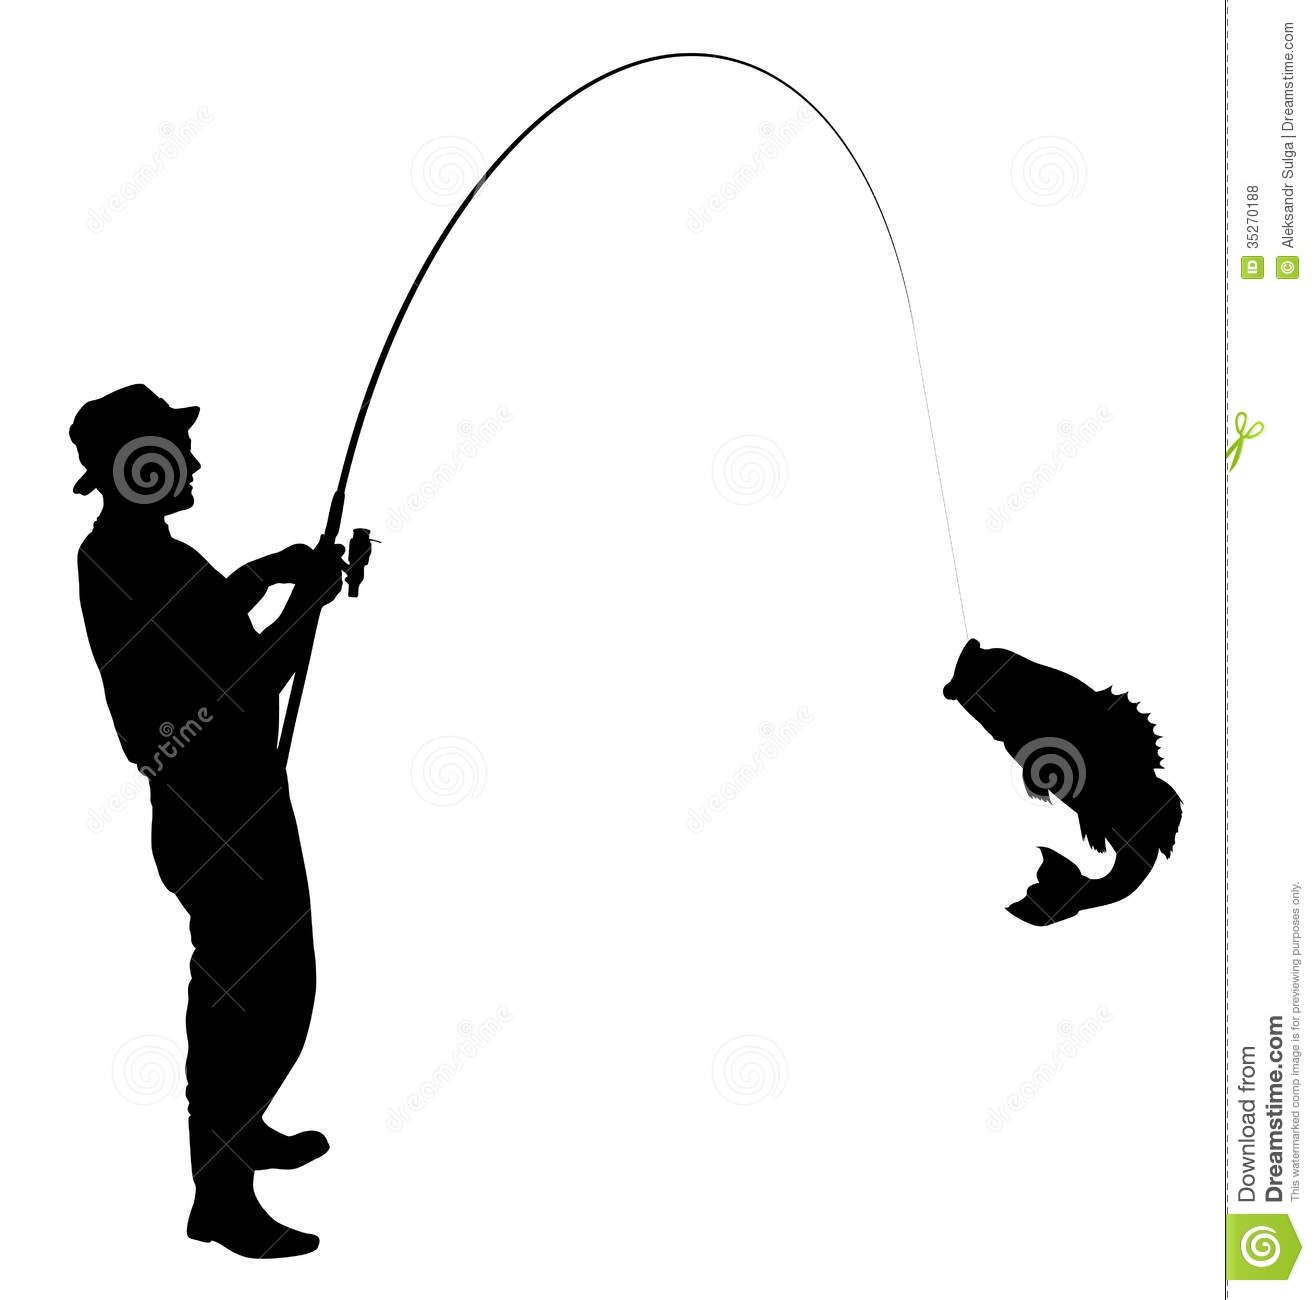 man fishing silhouette clipart panda free clipart images cakes rh pinterest com man fishing clip art free men fishing clipart